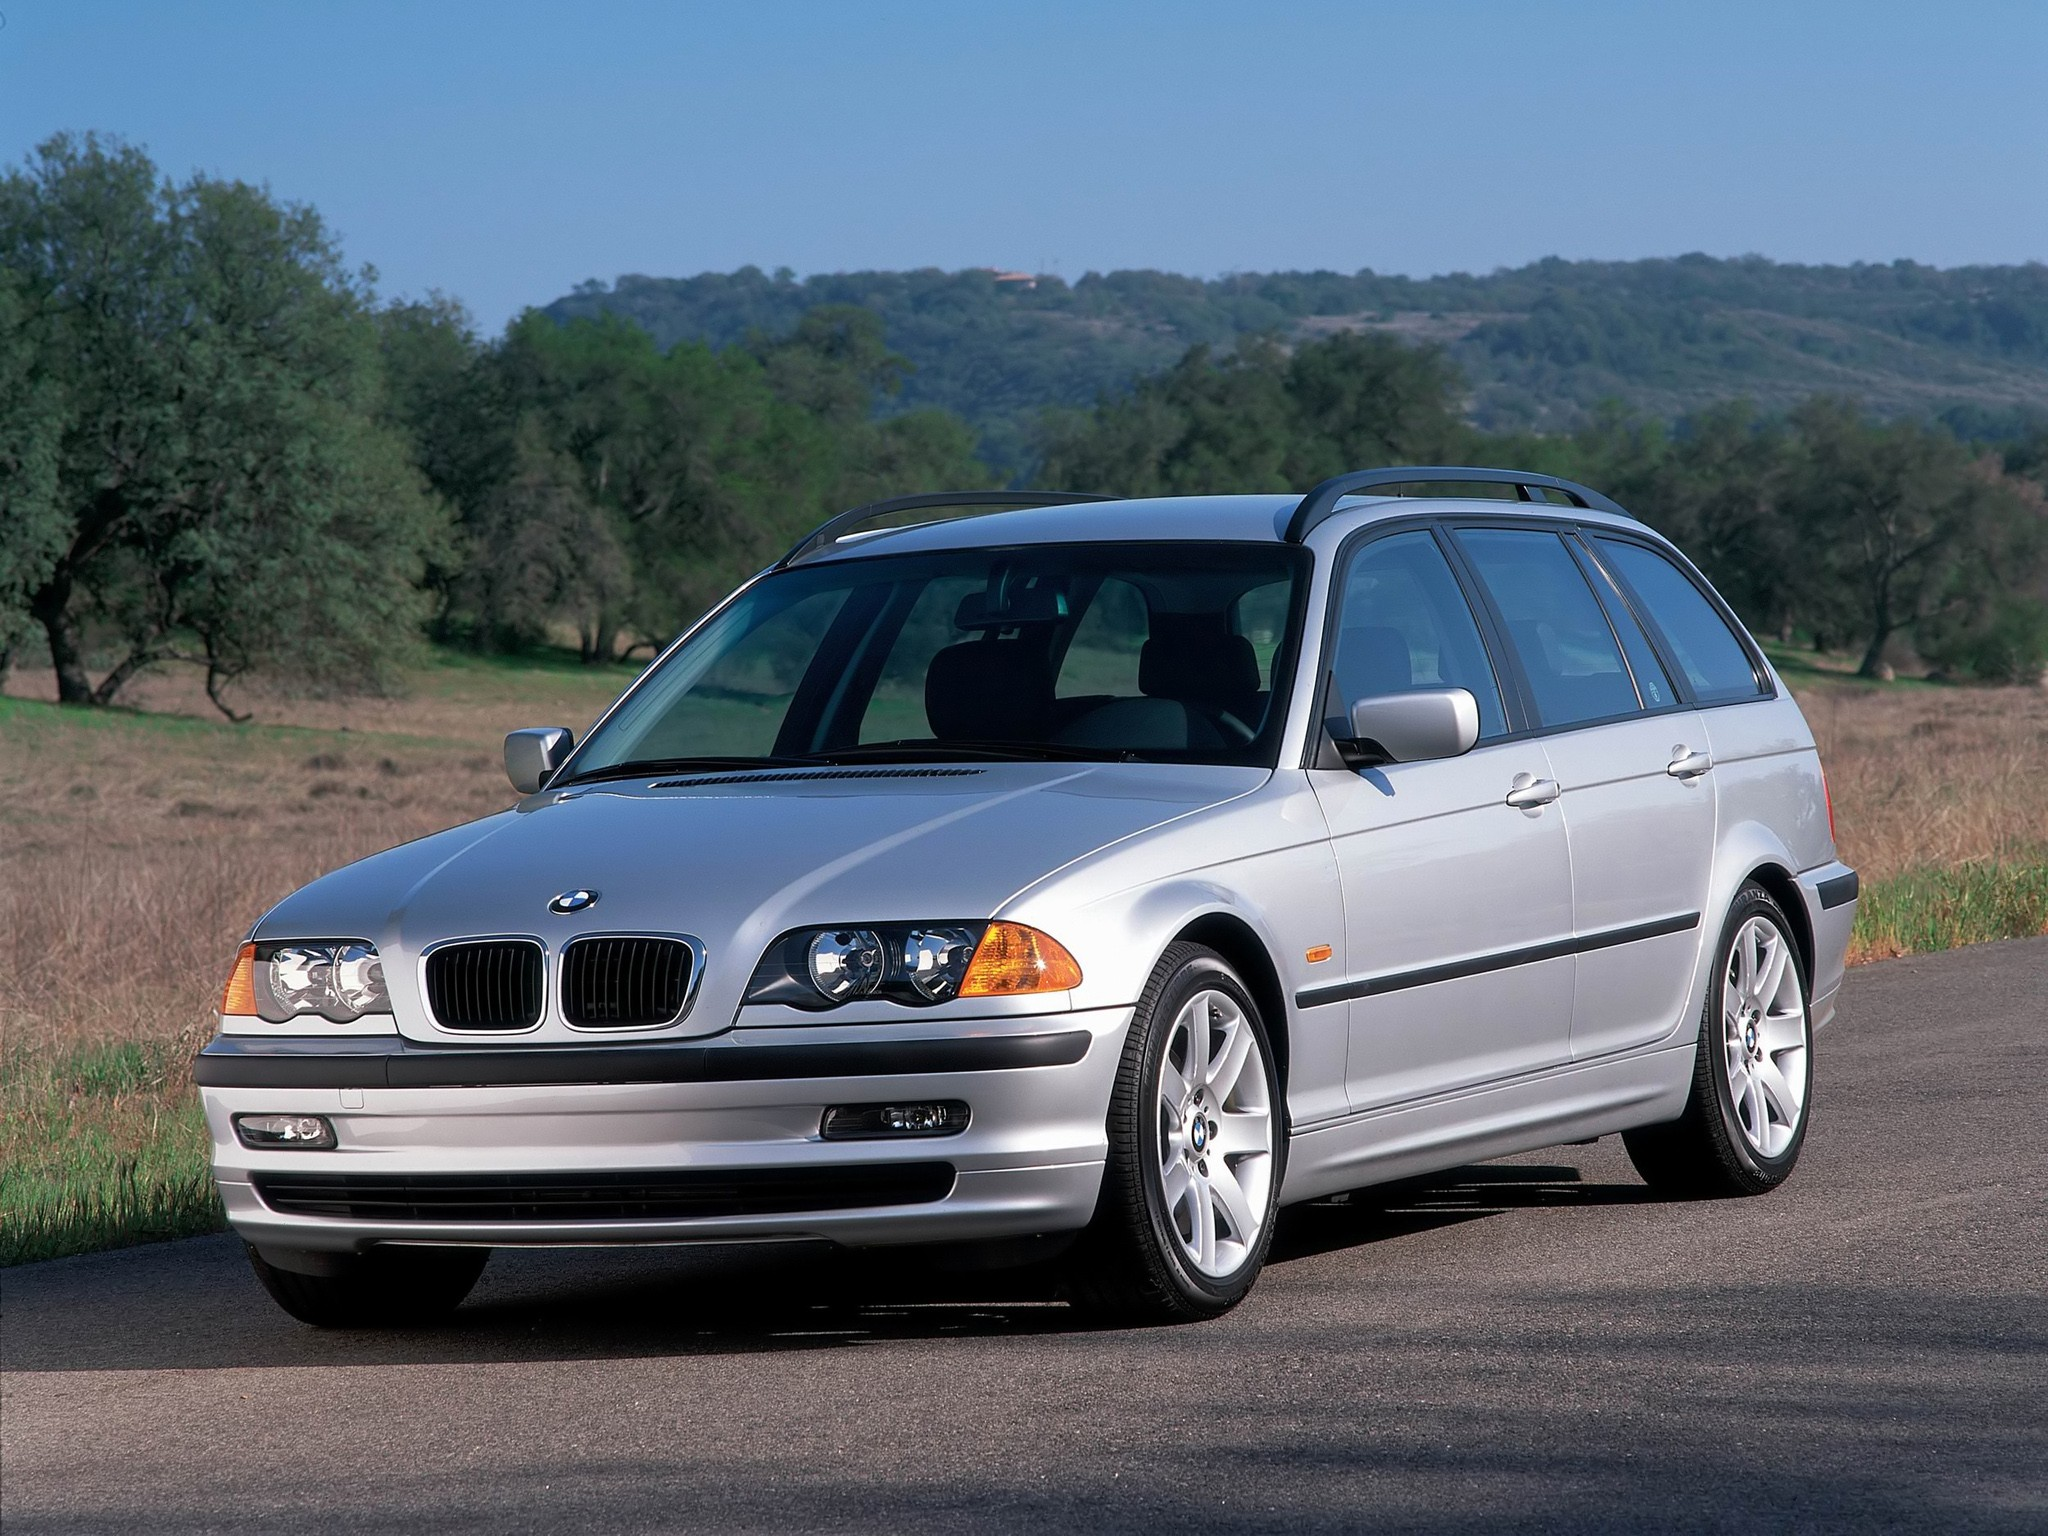 2000 bmw 3 series touring e46 pictures information. Black Bedroom Furniture Sets. Home Design Ideas